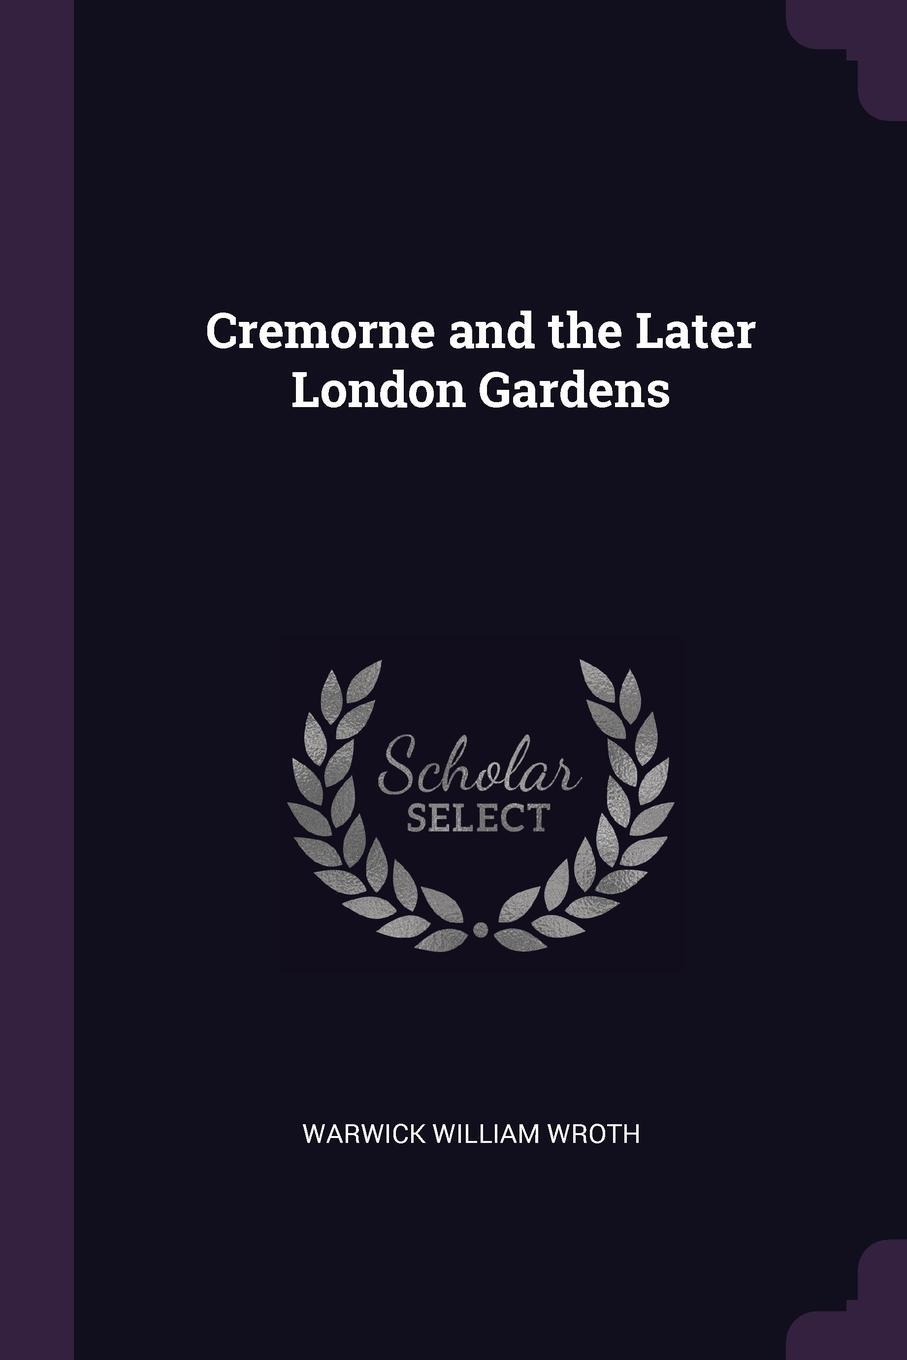 Warwick William Wroth. Cremorne and the Later London Gardens